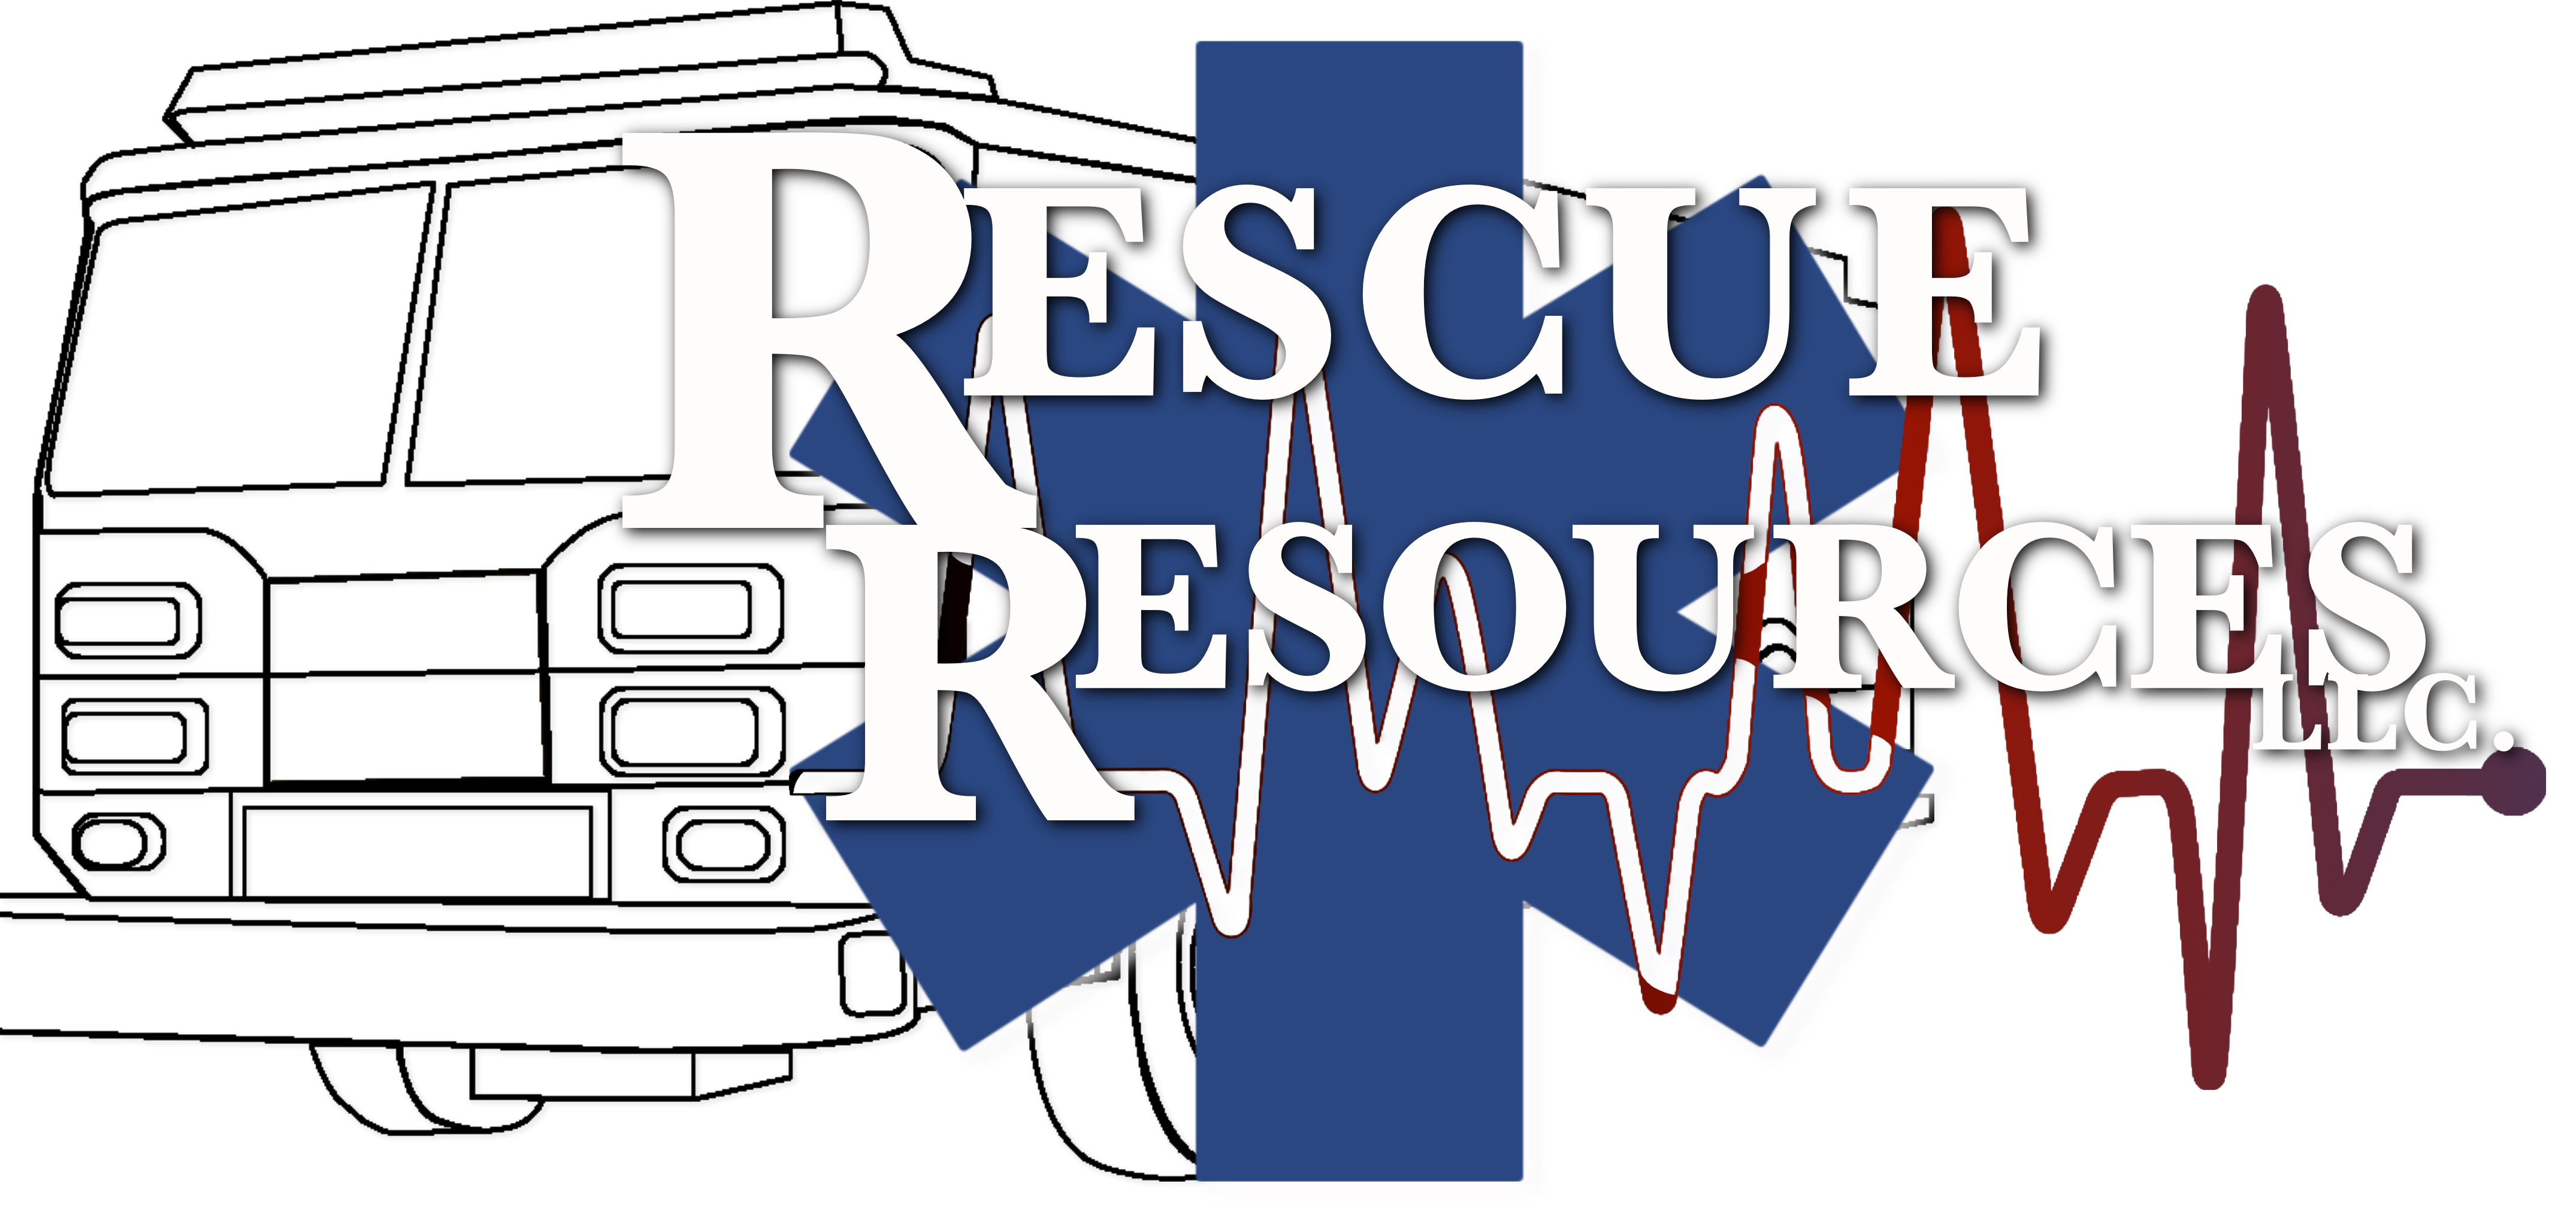 Rescue Resources Llc Cpr Madison Rrcpr Cpr First Aid Aed